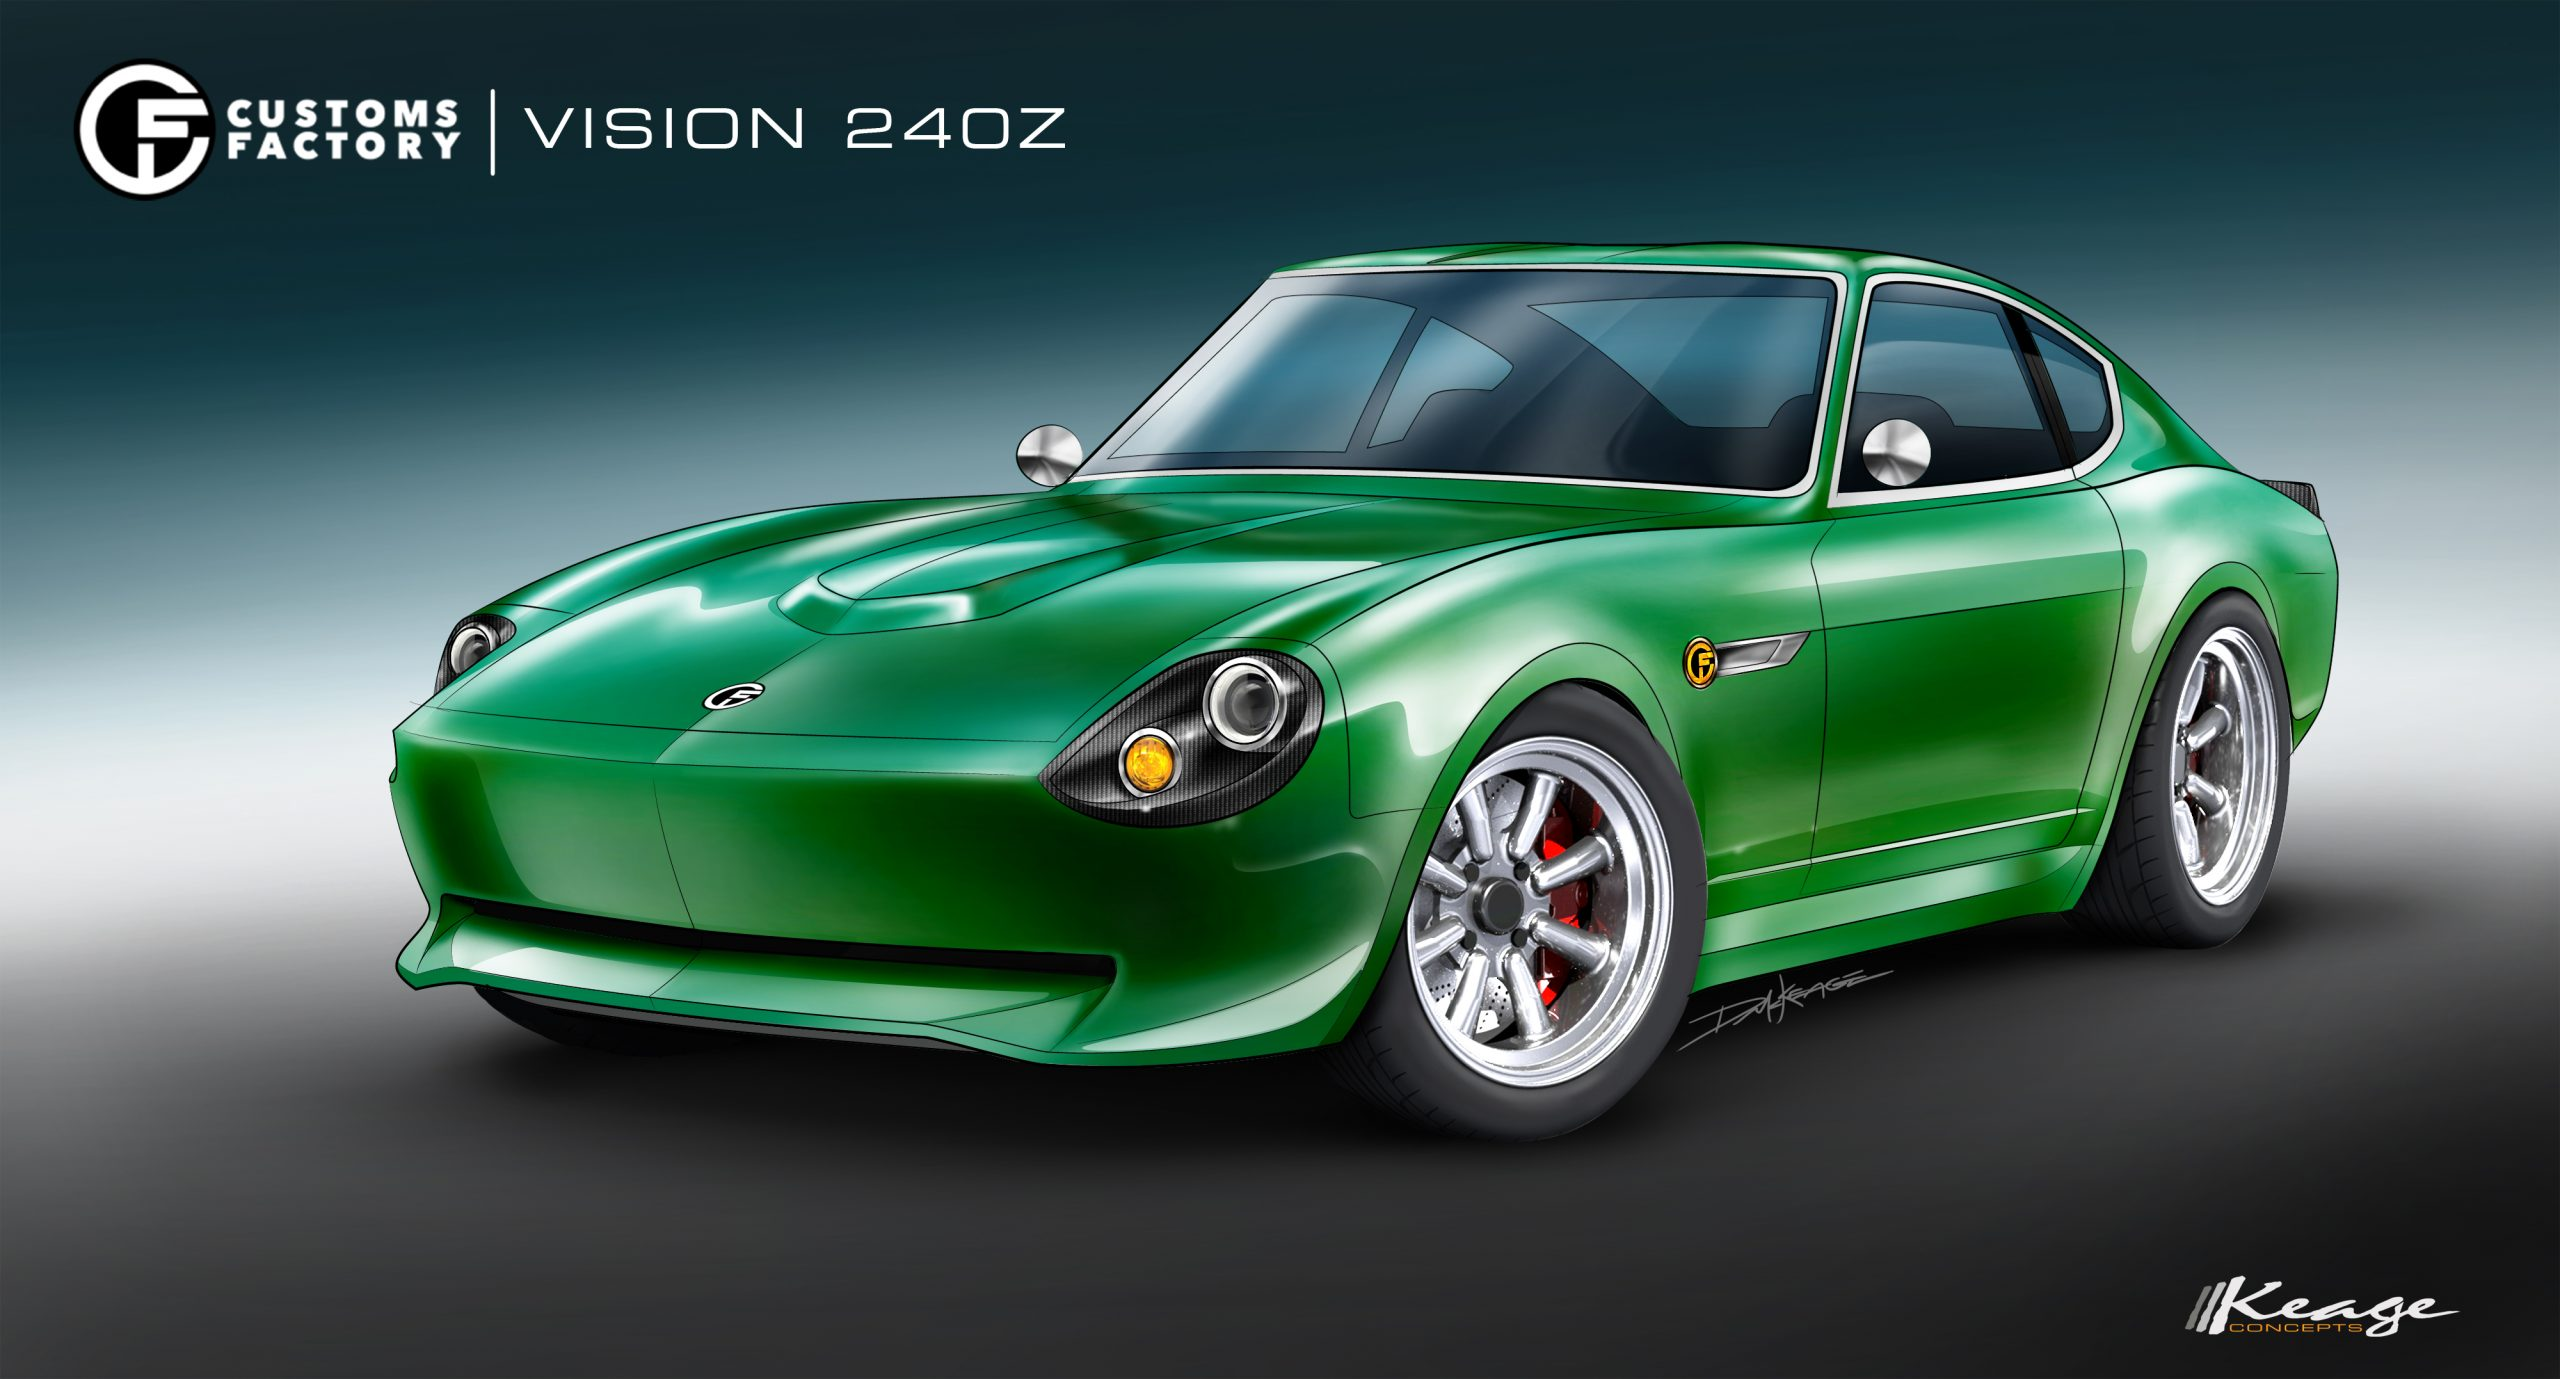 CUSTOMS FACTORY VISION 240Z Keage Concepts Calgary Alberta Automotive Design